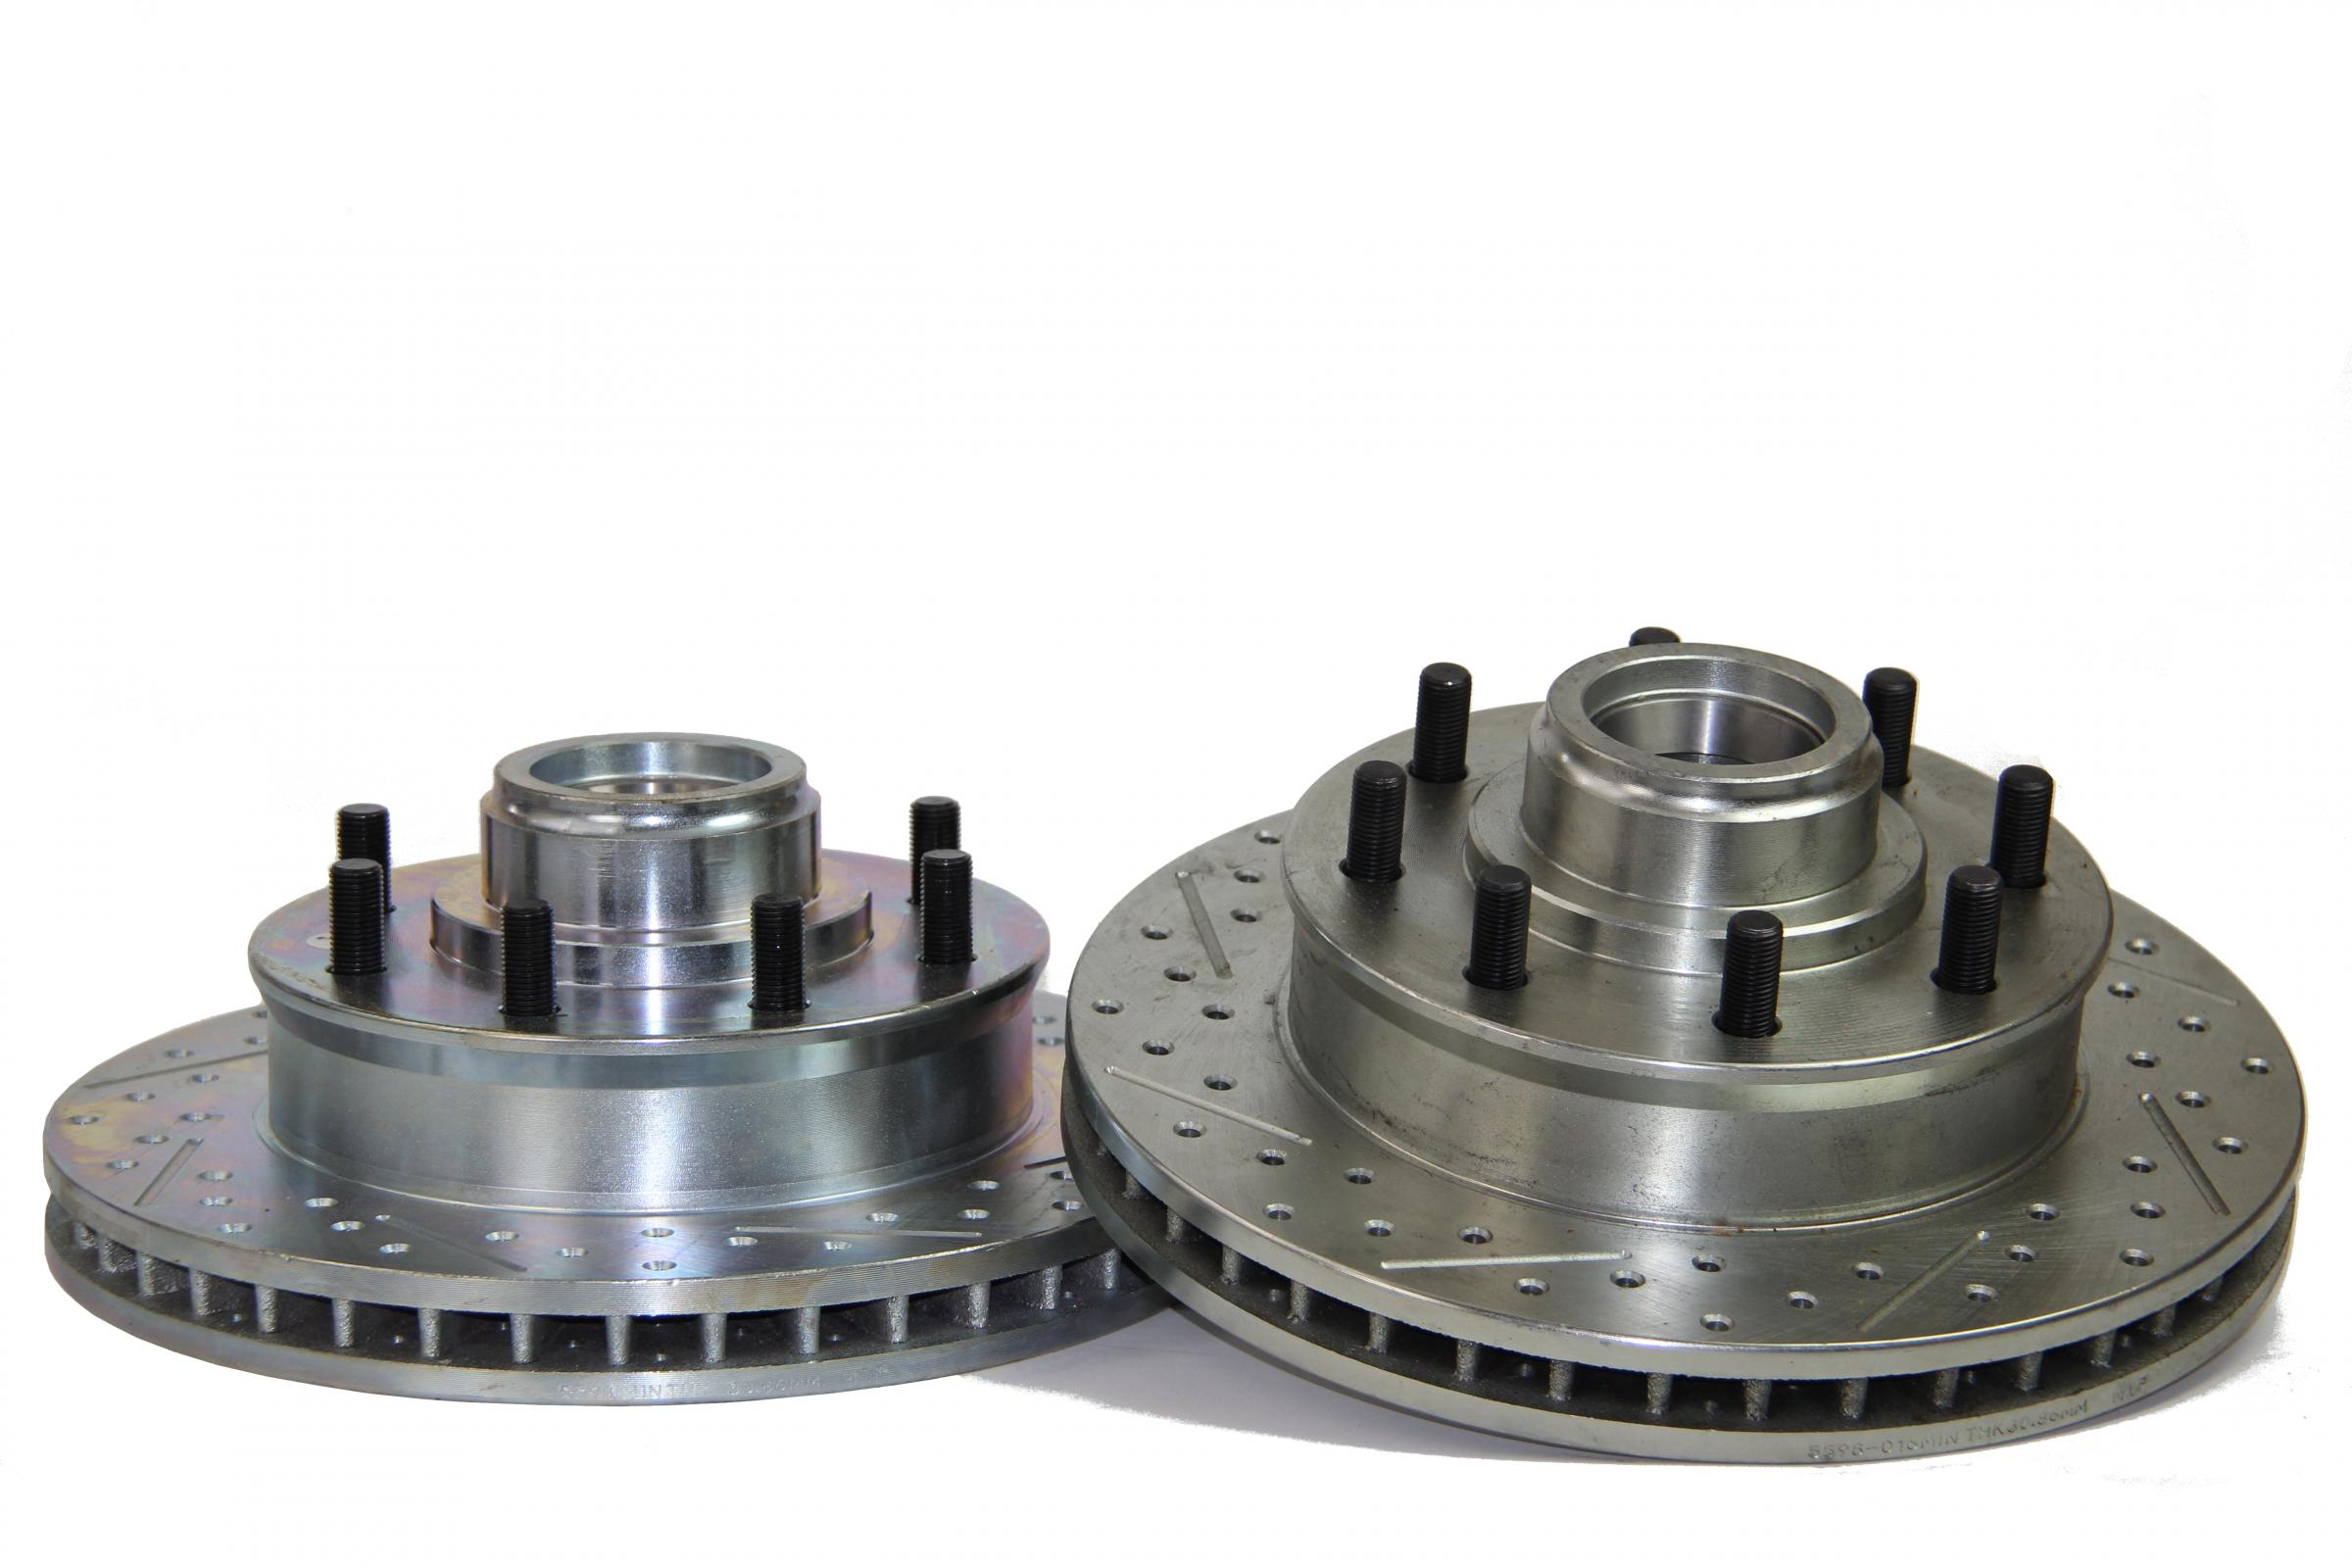 Brake Rotor 13.66 Inch Front 1.500 Thick Various Ford Applications BAER Sport - 54160-020